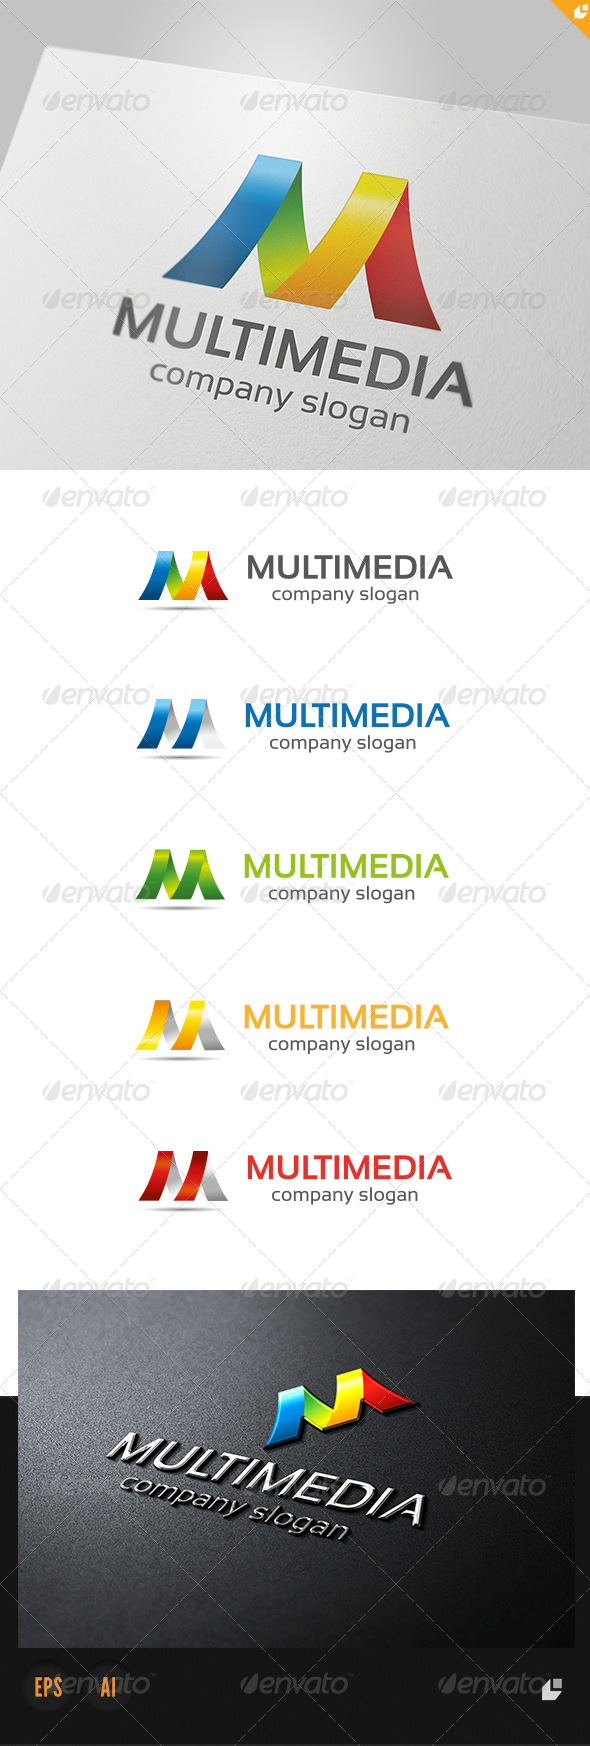 GraphicRiver Multimedia Logo 4076046